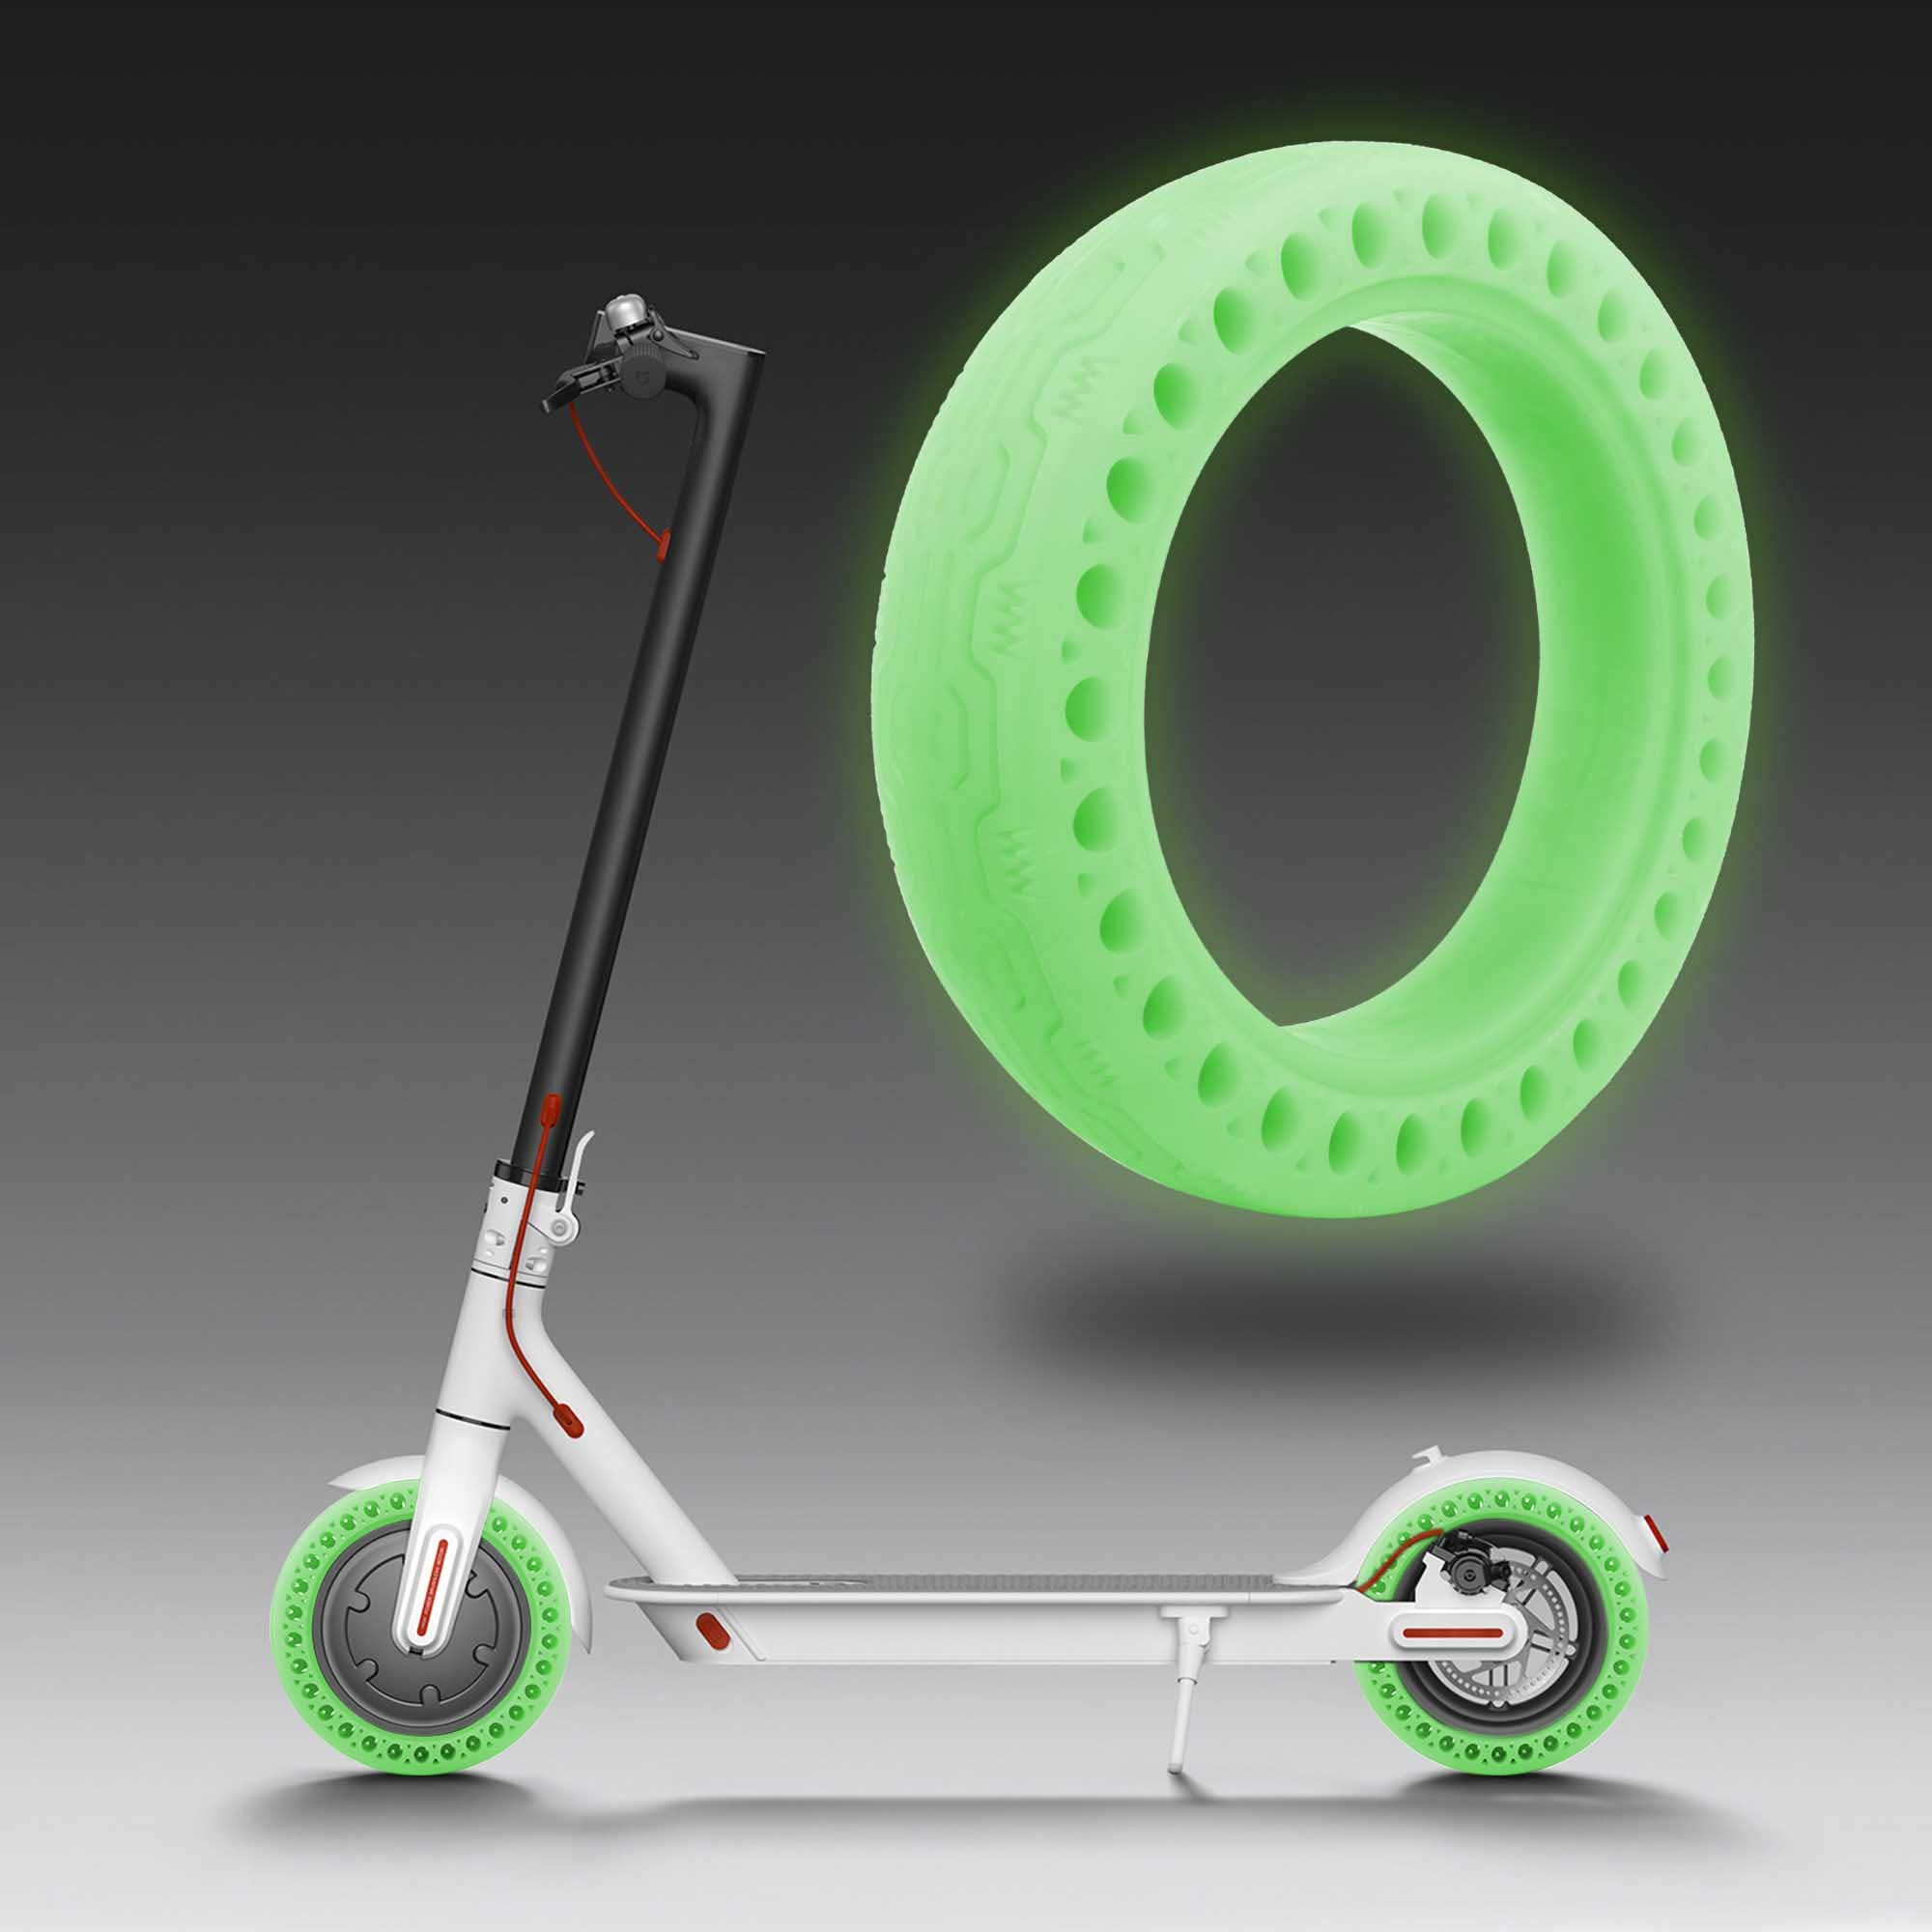 TOMALL Honeycomb Rubber Solid Tire 8.5 Inch Fluorescent Tire Tubeless Luminous Solid Tyre for Xiaomi M365 Electric Scooter by TOMALL